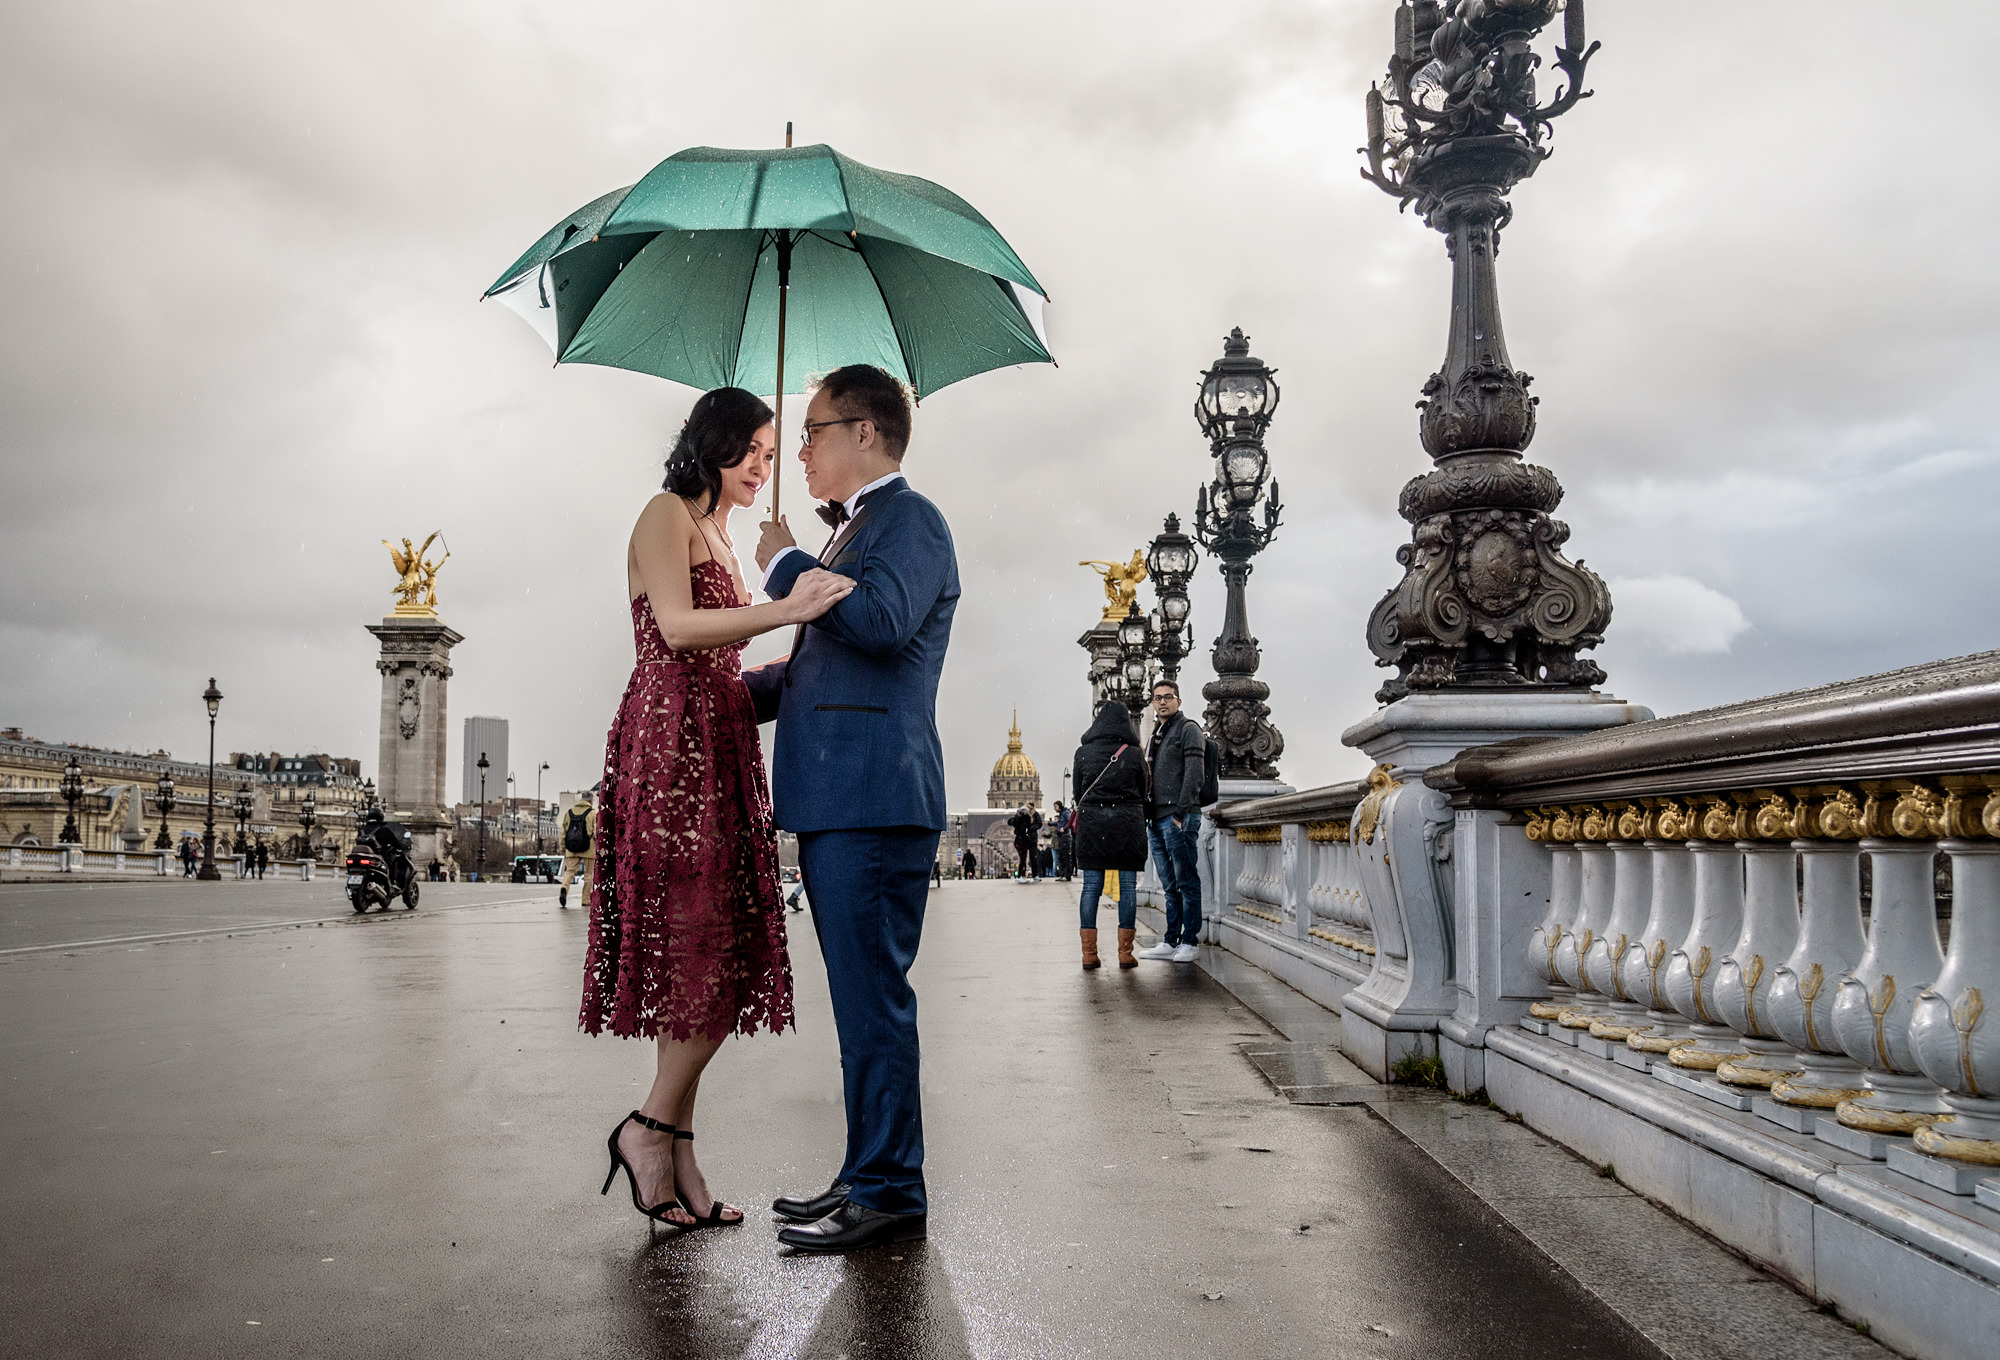 paris-pre-wedding-photography-in-the-rain